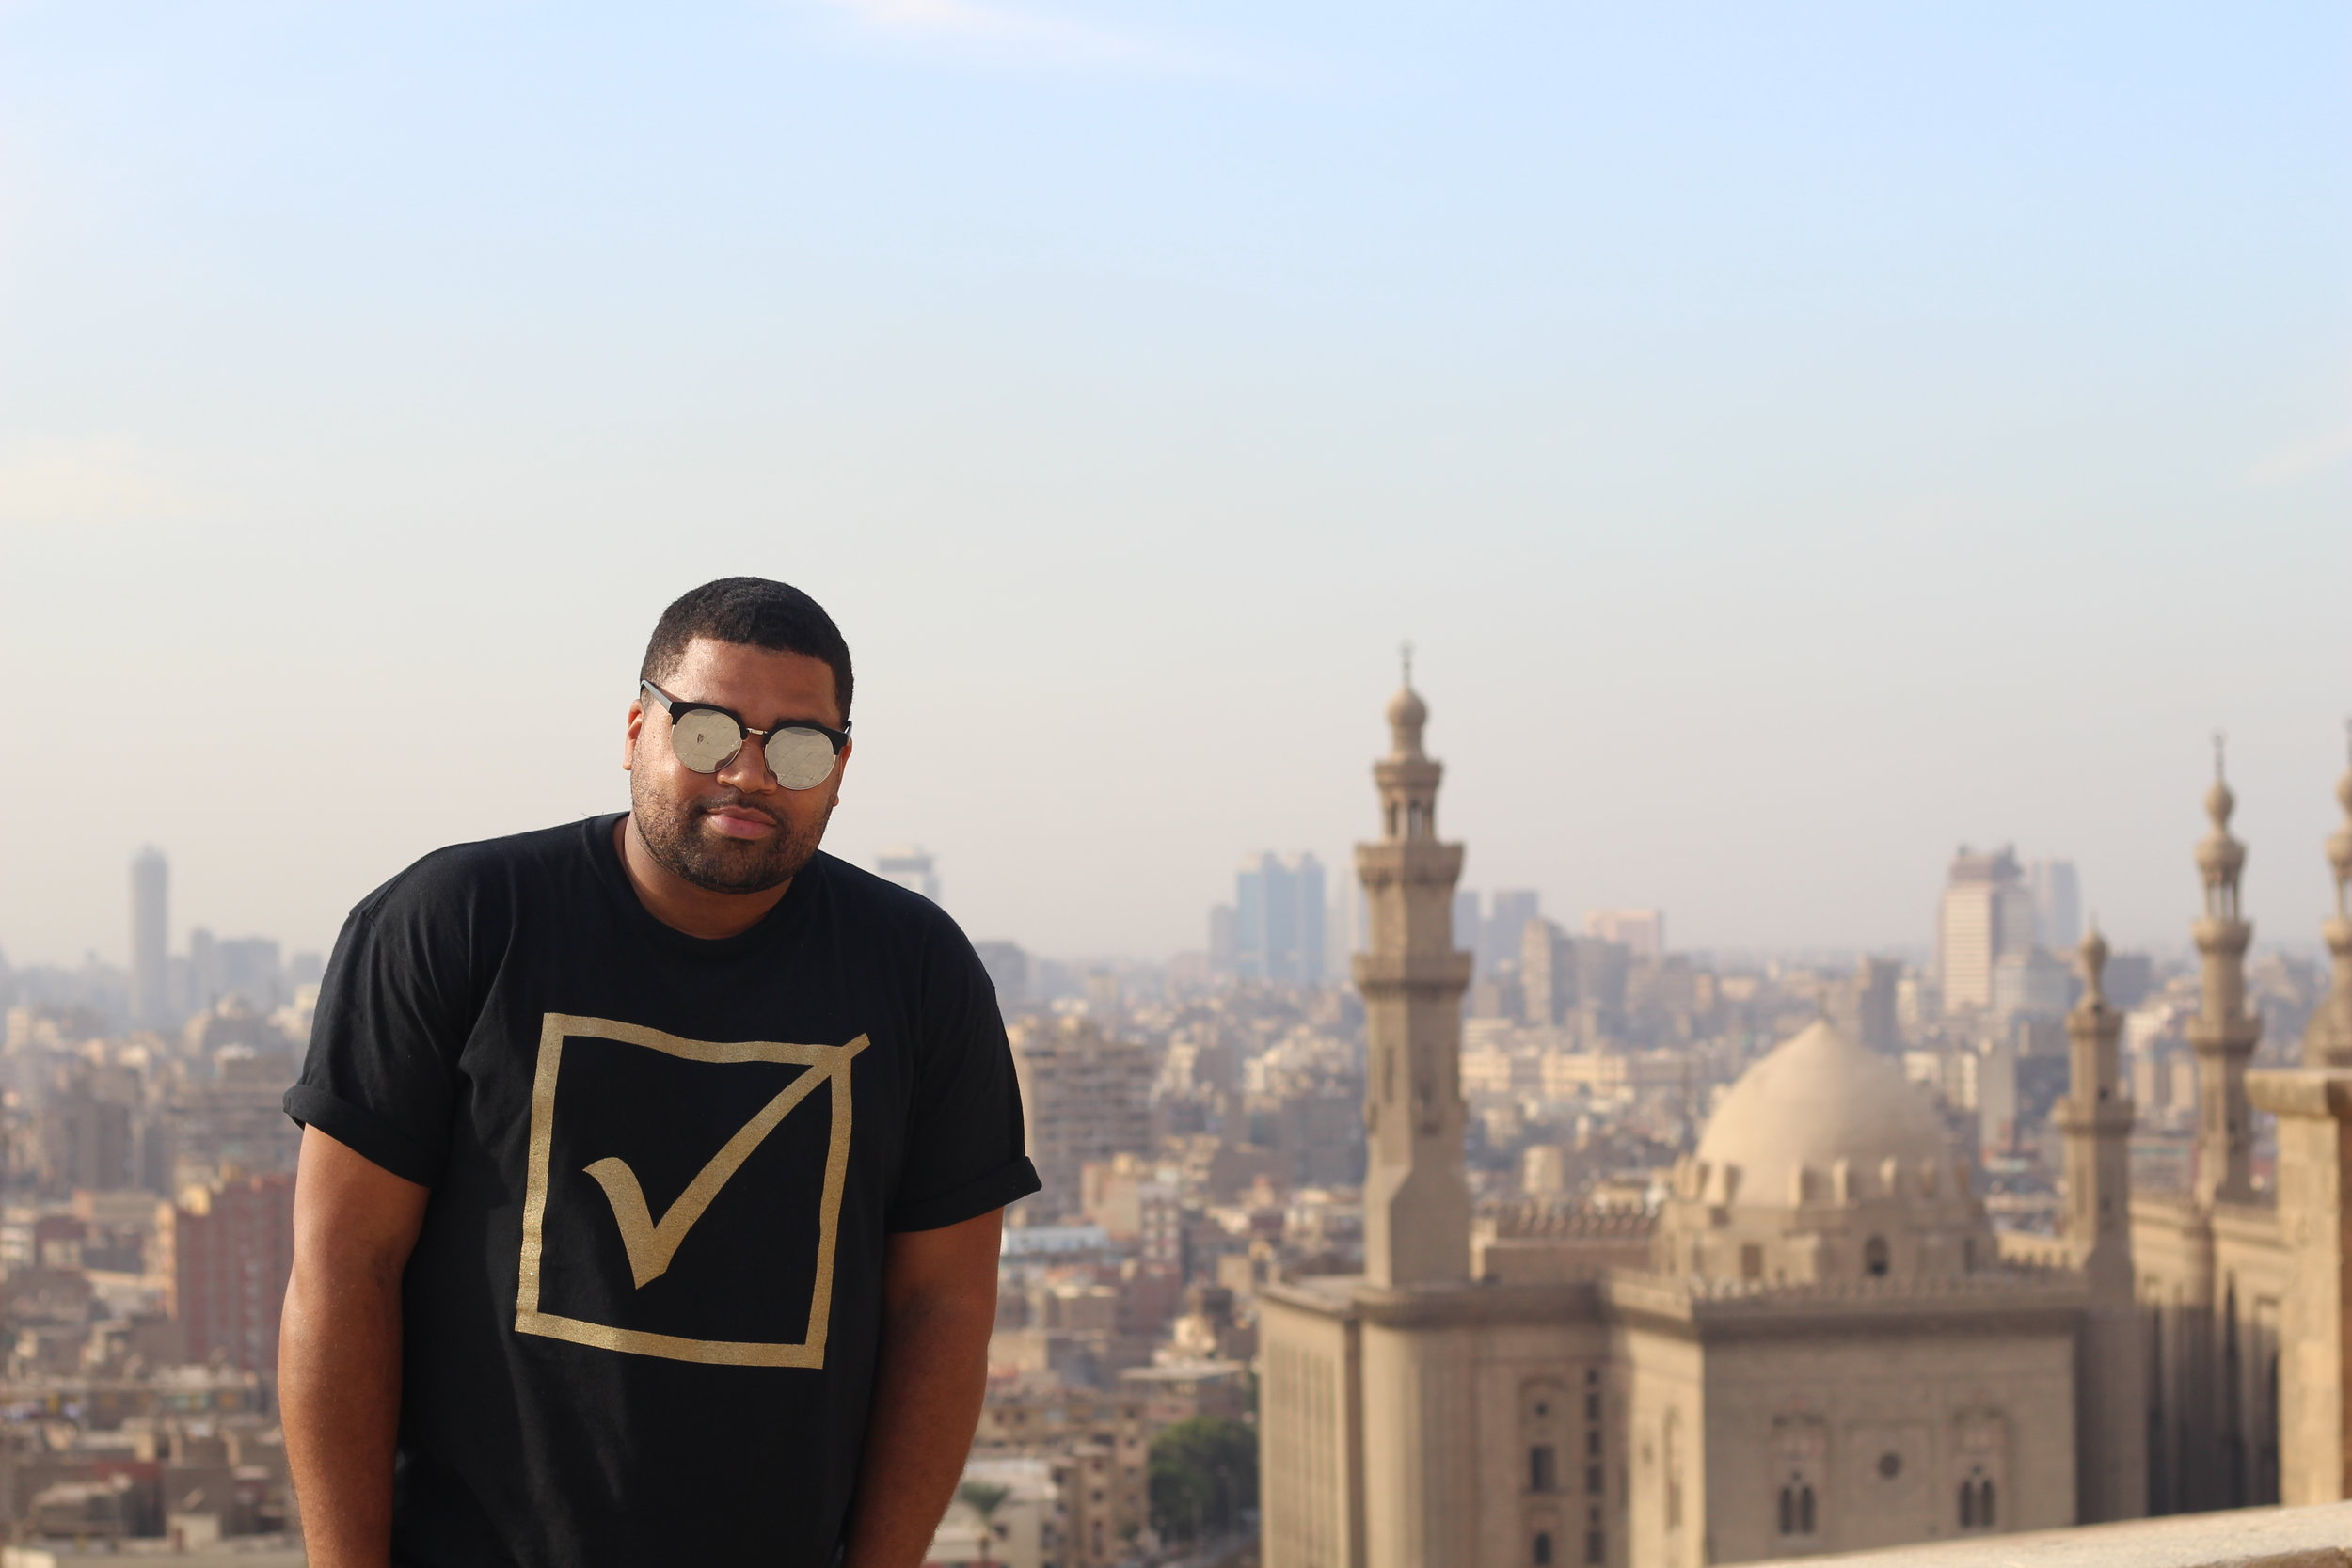 The view of Cairo from the top of the Citadel is awesome.